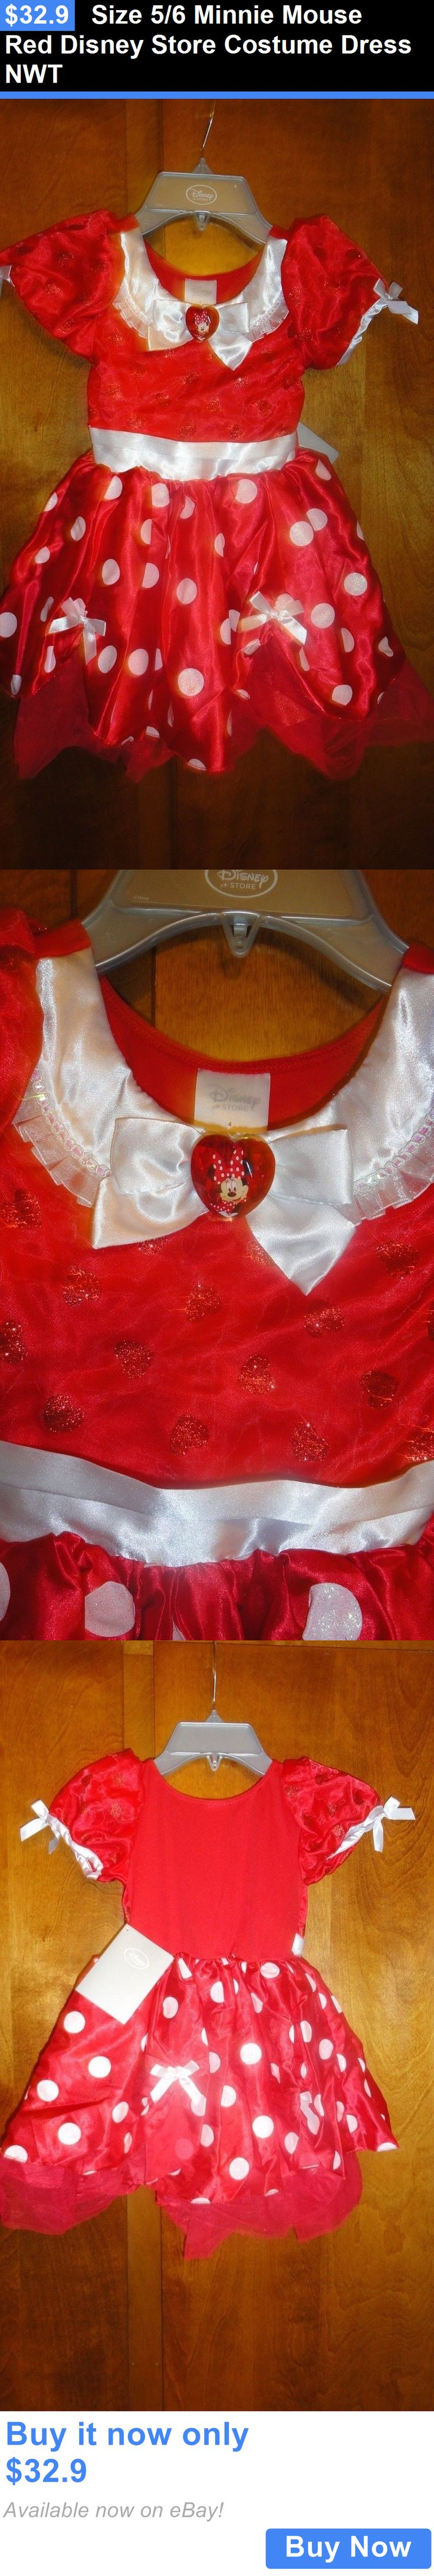 Kids Costumes: Size 5/6 Minnie Mouse Red Disney Store Costume Dress Nwt BUY IT NOW ONLY: $32.9